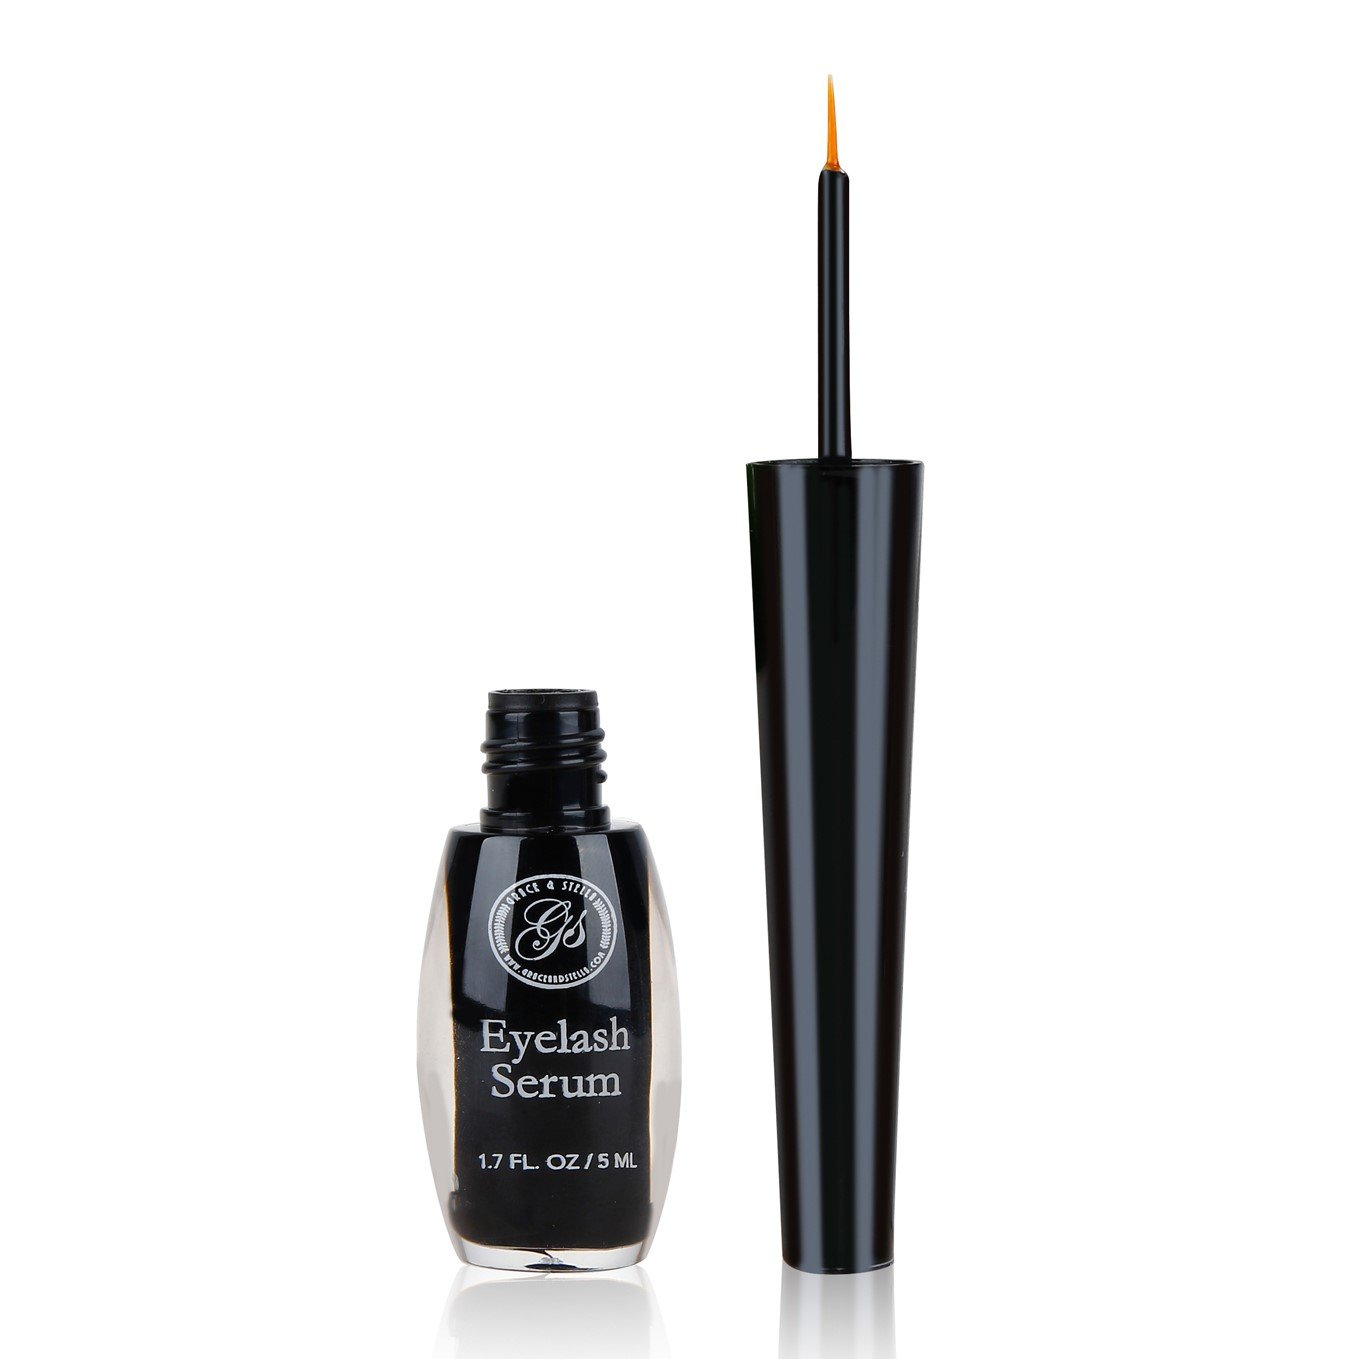 *NEW* Advanced Eyelash Growth Serum - Powerful Eye Lashes Booster Enhancer (5ml / 1.7oz) - Made with Natural Herbs Ingredients for Rapid Enhancing Fuller, Longer & Thicker Eyelashes Prevent Breakage Full Eyebrow Regrowth Treatment . 100% Natural &